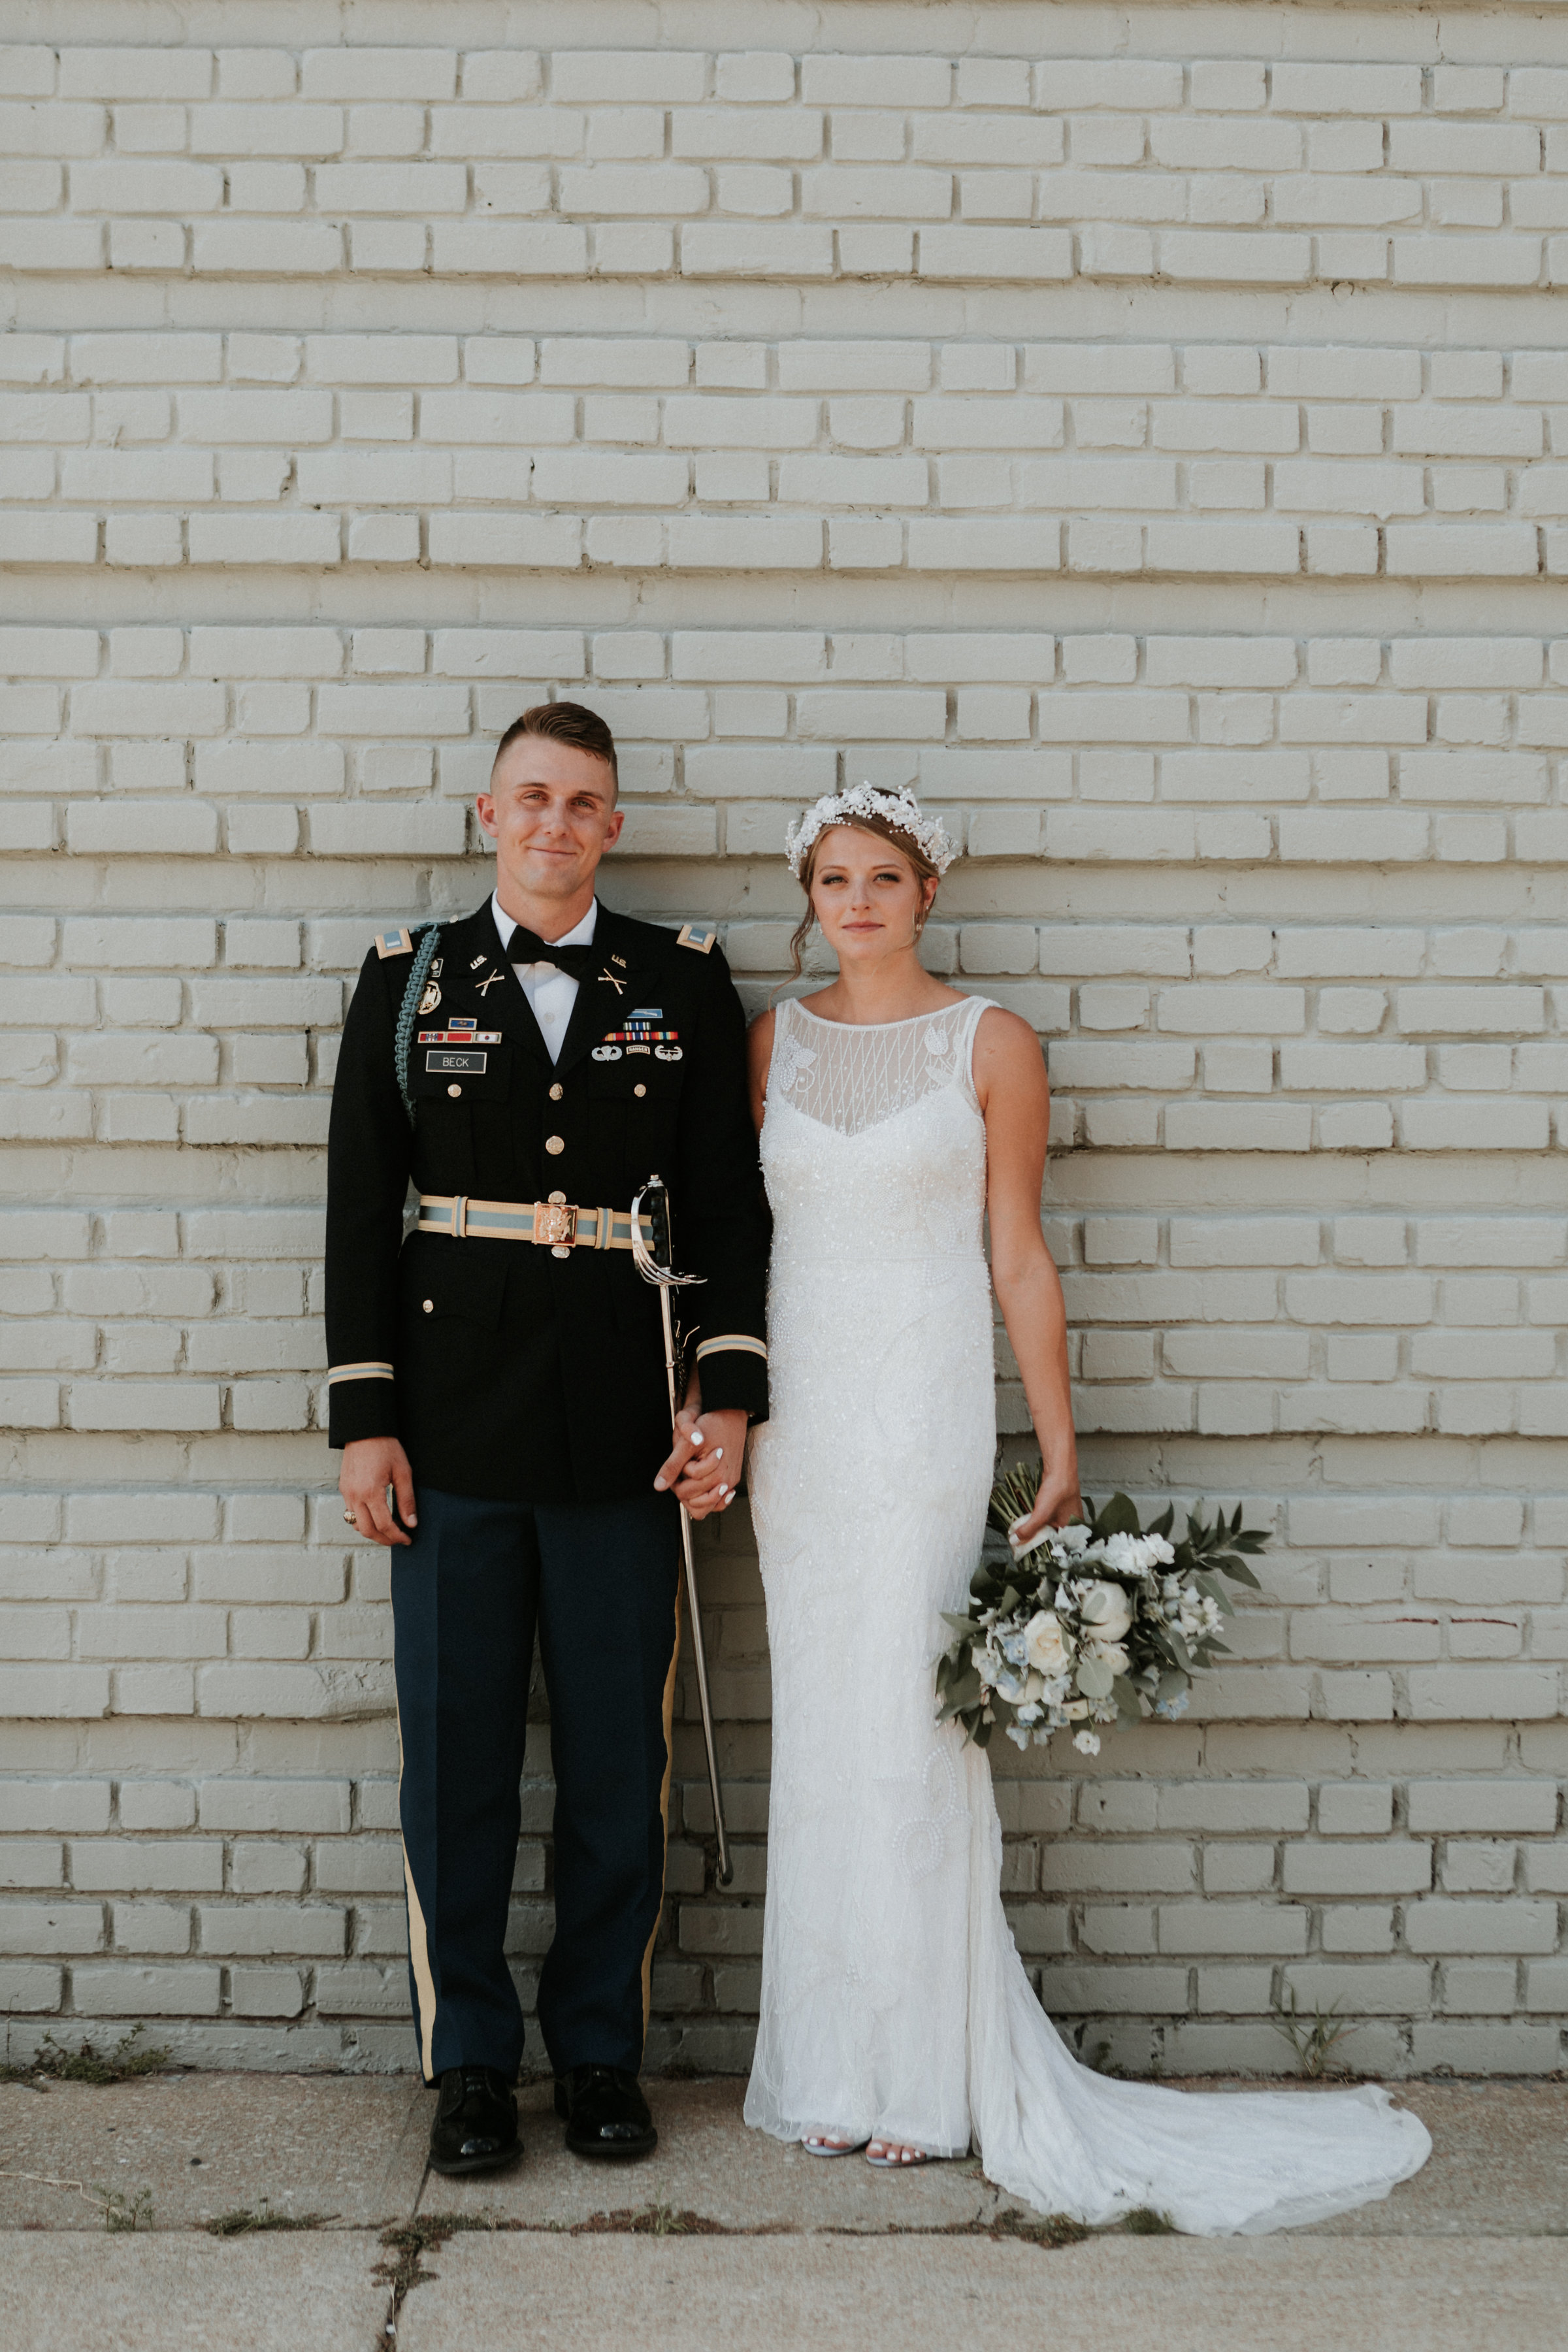 camber-and-drew-wedding-ethan-gaskill-photography(683of958).jpg